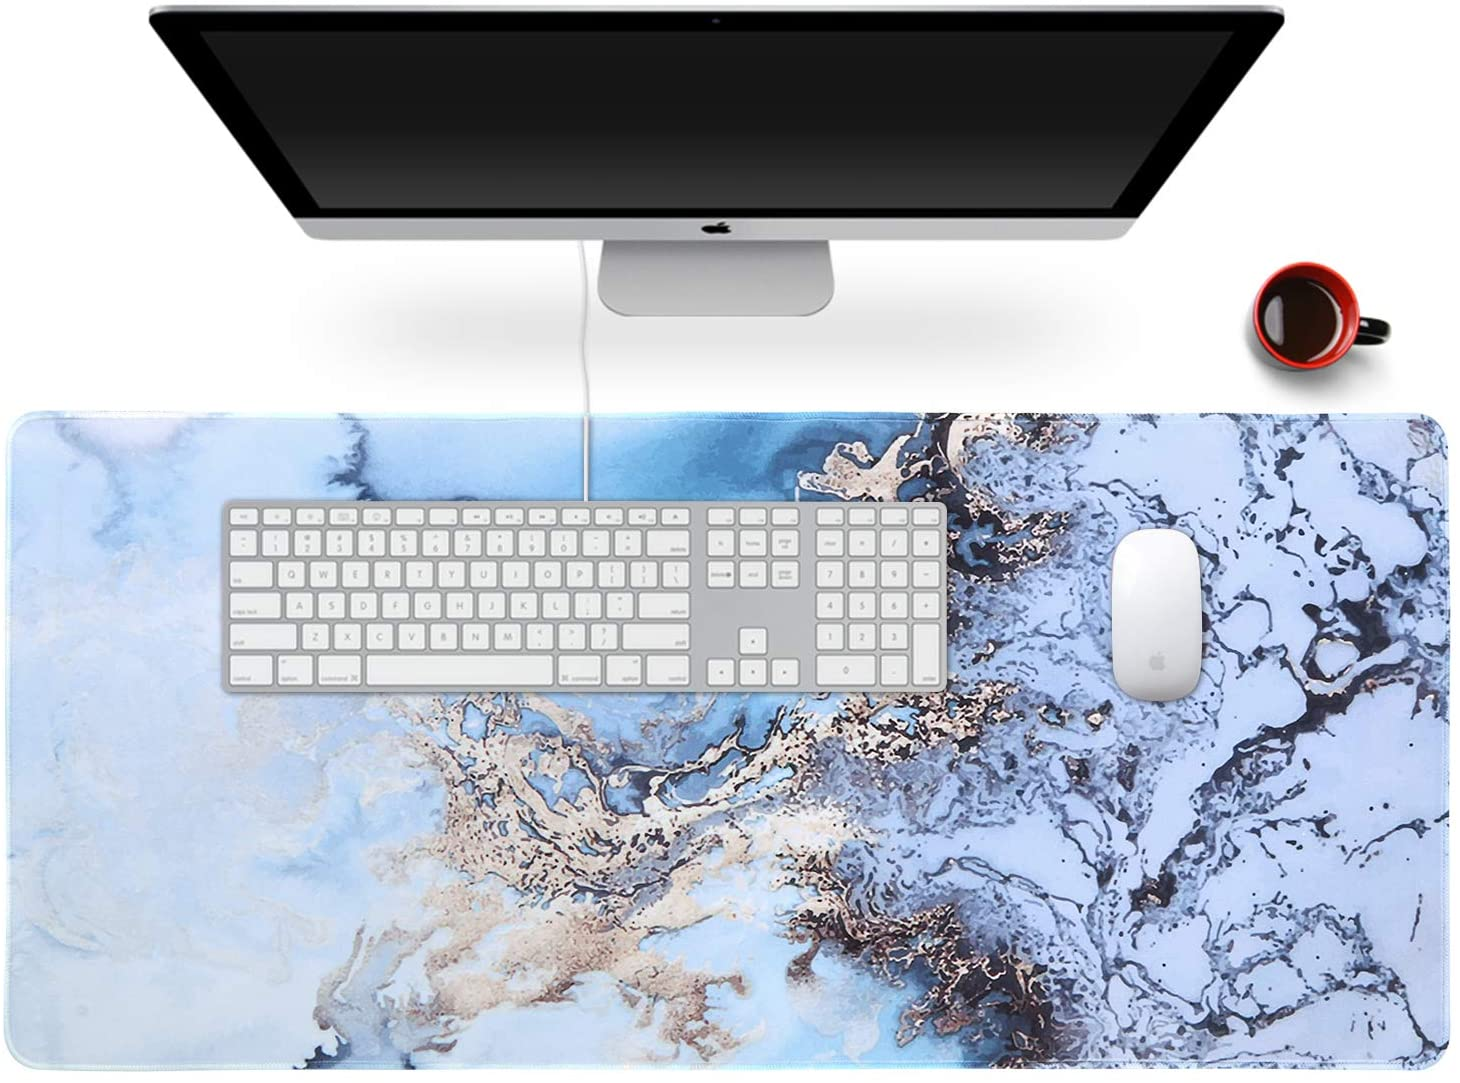 Anyshock Desk Mat, Extended Gaming Mouse Pad 35.4